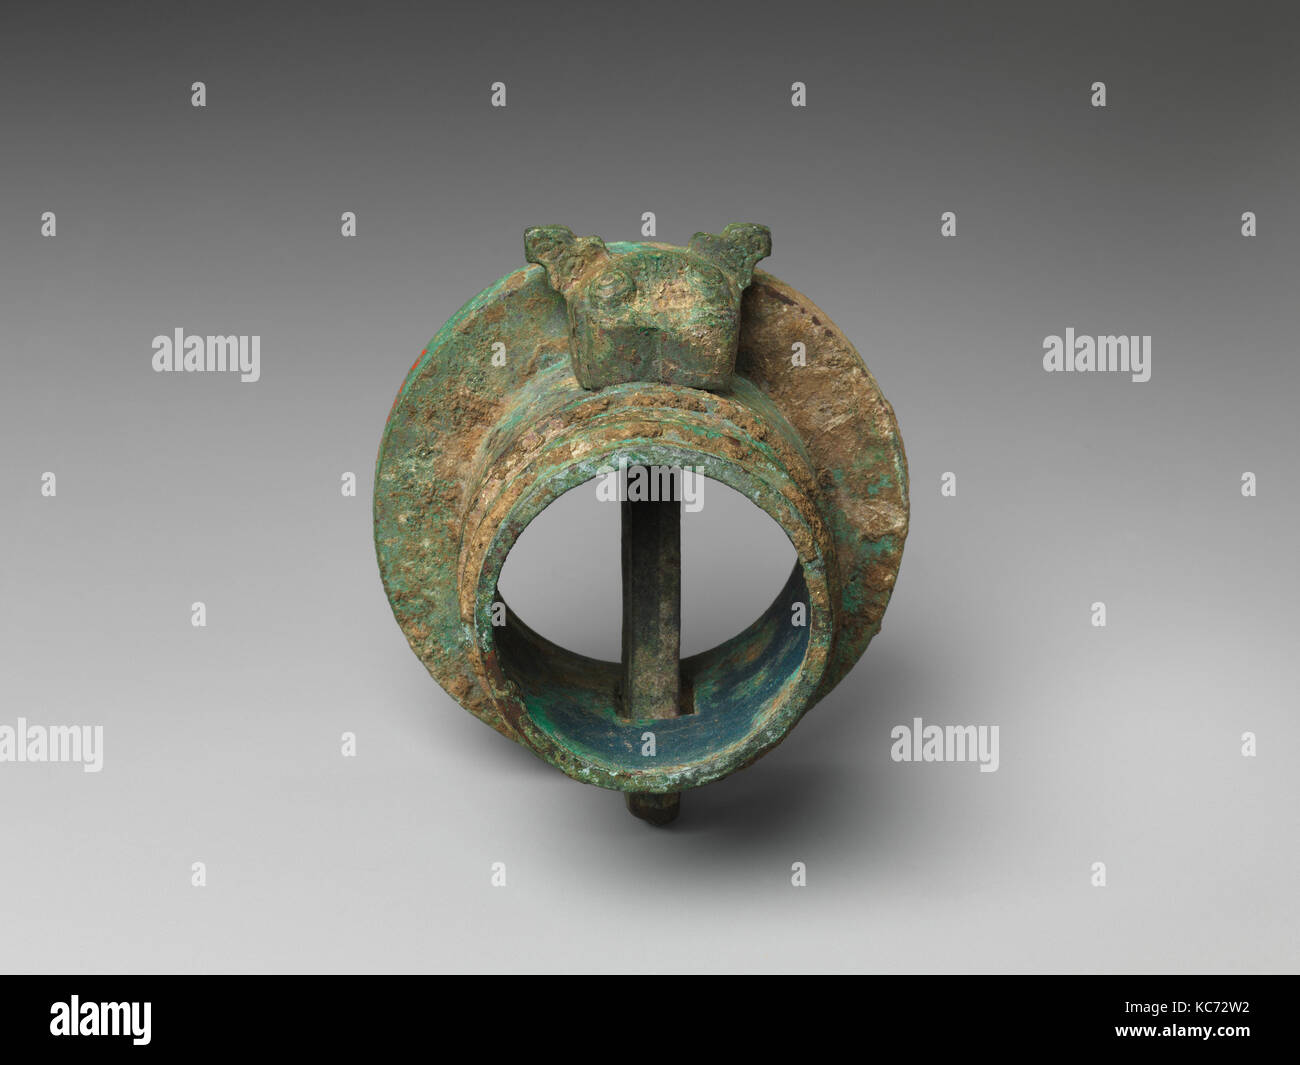 Axle heads and pins late eastern zhou dynasty 770256 bc china axle heads and pins late eastern zhou dynasty 770256 bc china bronze h 2 14 in 57 cm metalwork buycottarizona Choice Image